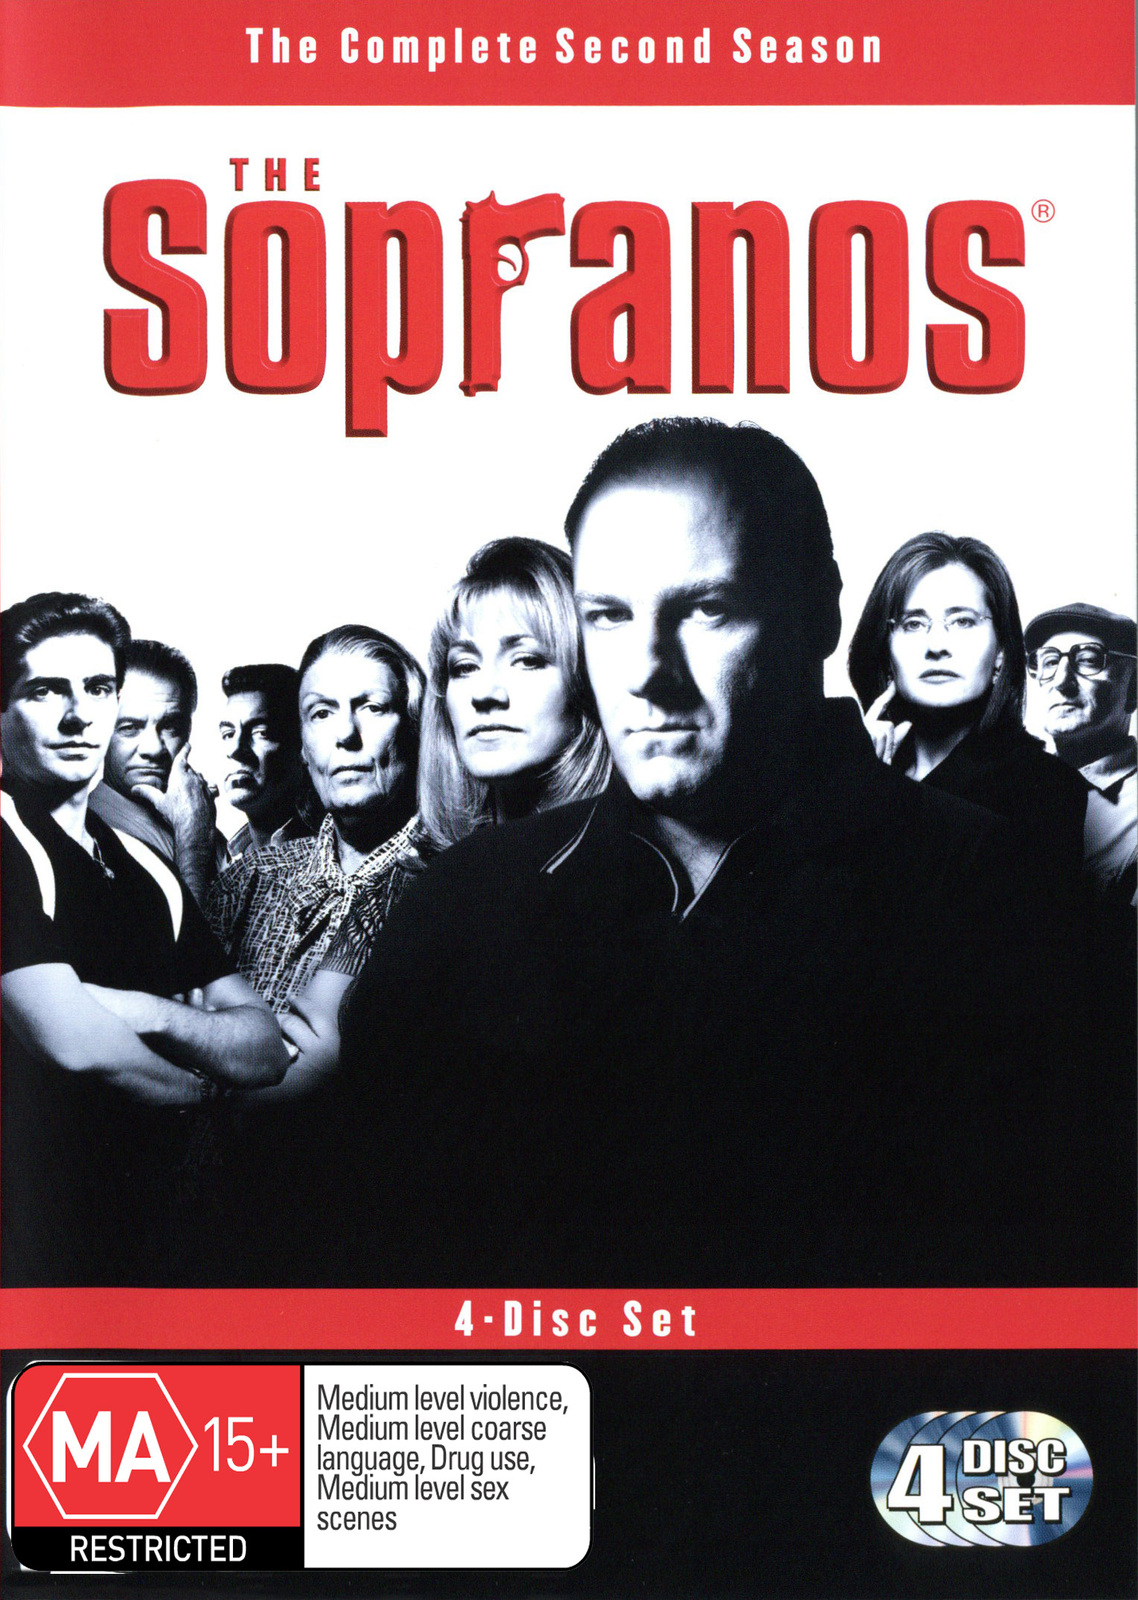 The Sopranos - Season 2 (4 Disc Box Set) on DVD image